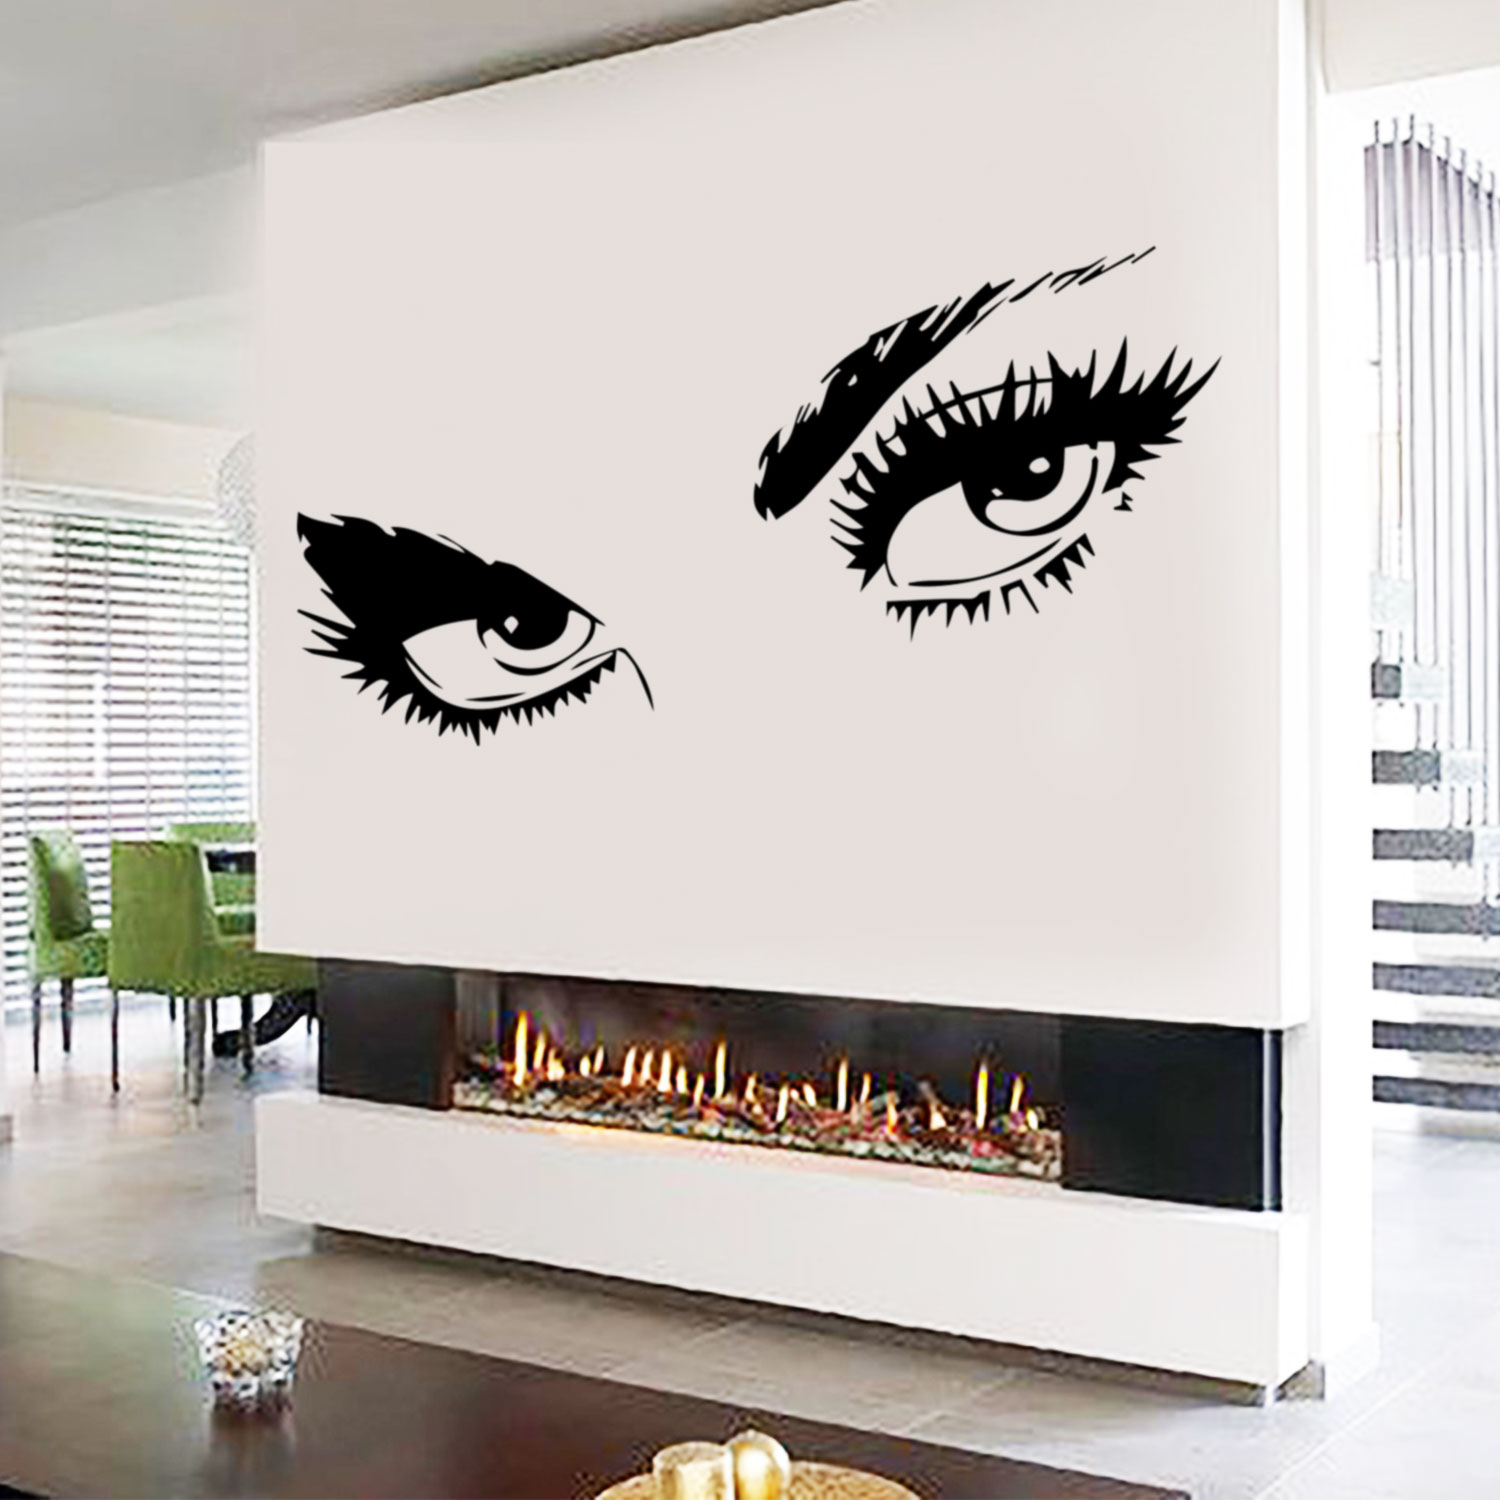 Audrey Hepburn Sexy Eyes / Attractive Eye Wall Decal Art Decor   Vinyl  Sticker   Walmart.com